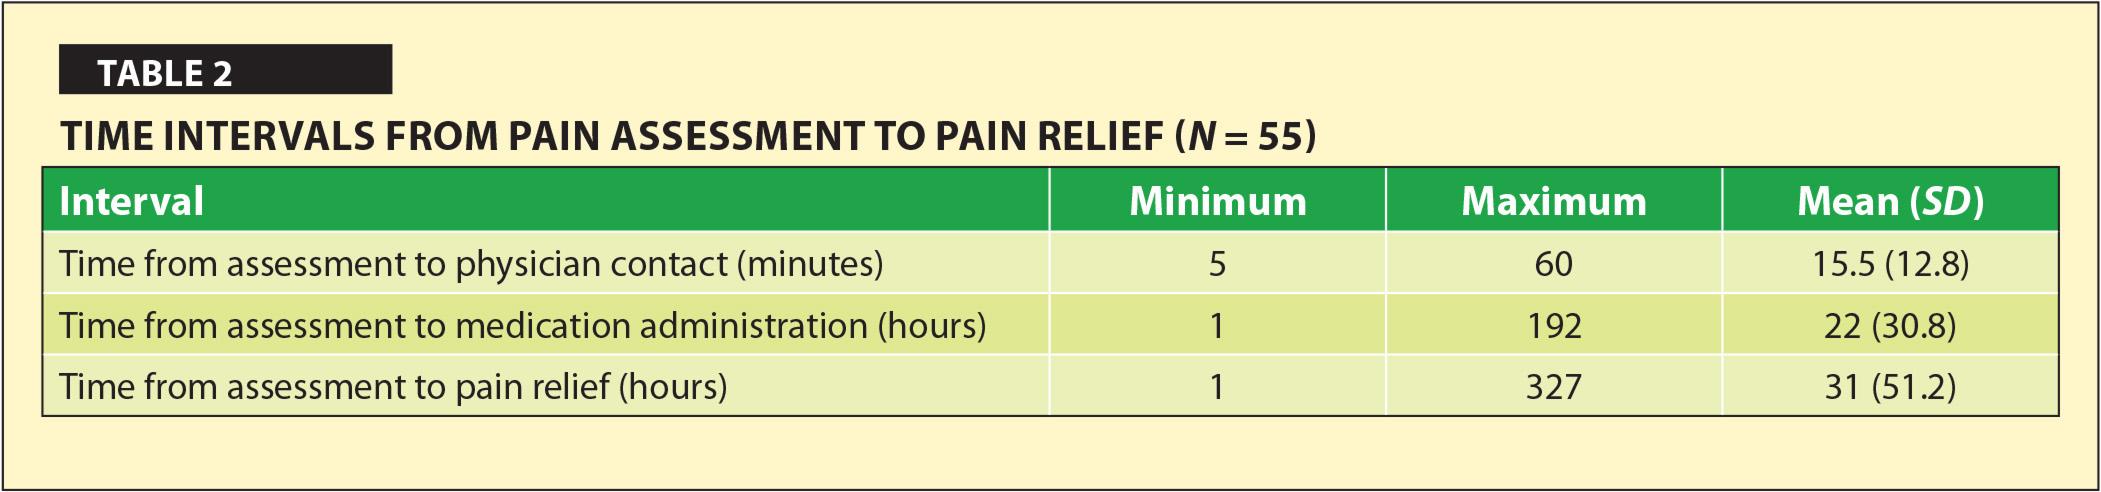 Time Intervals from Pain Assessment to Pain Relief (N = 55)